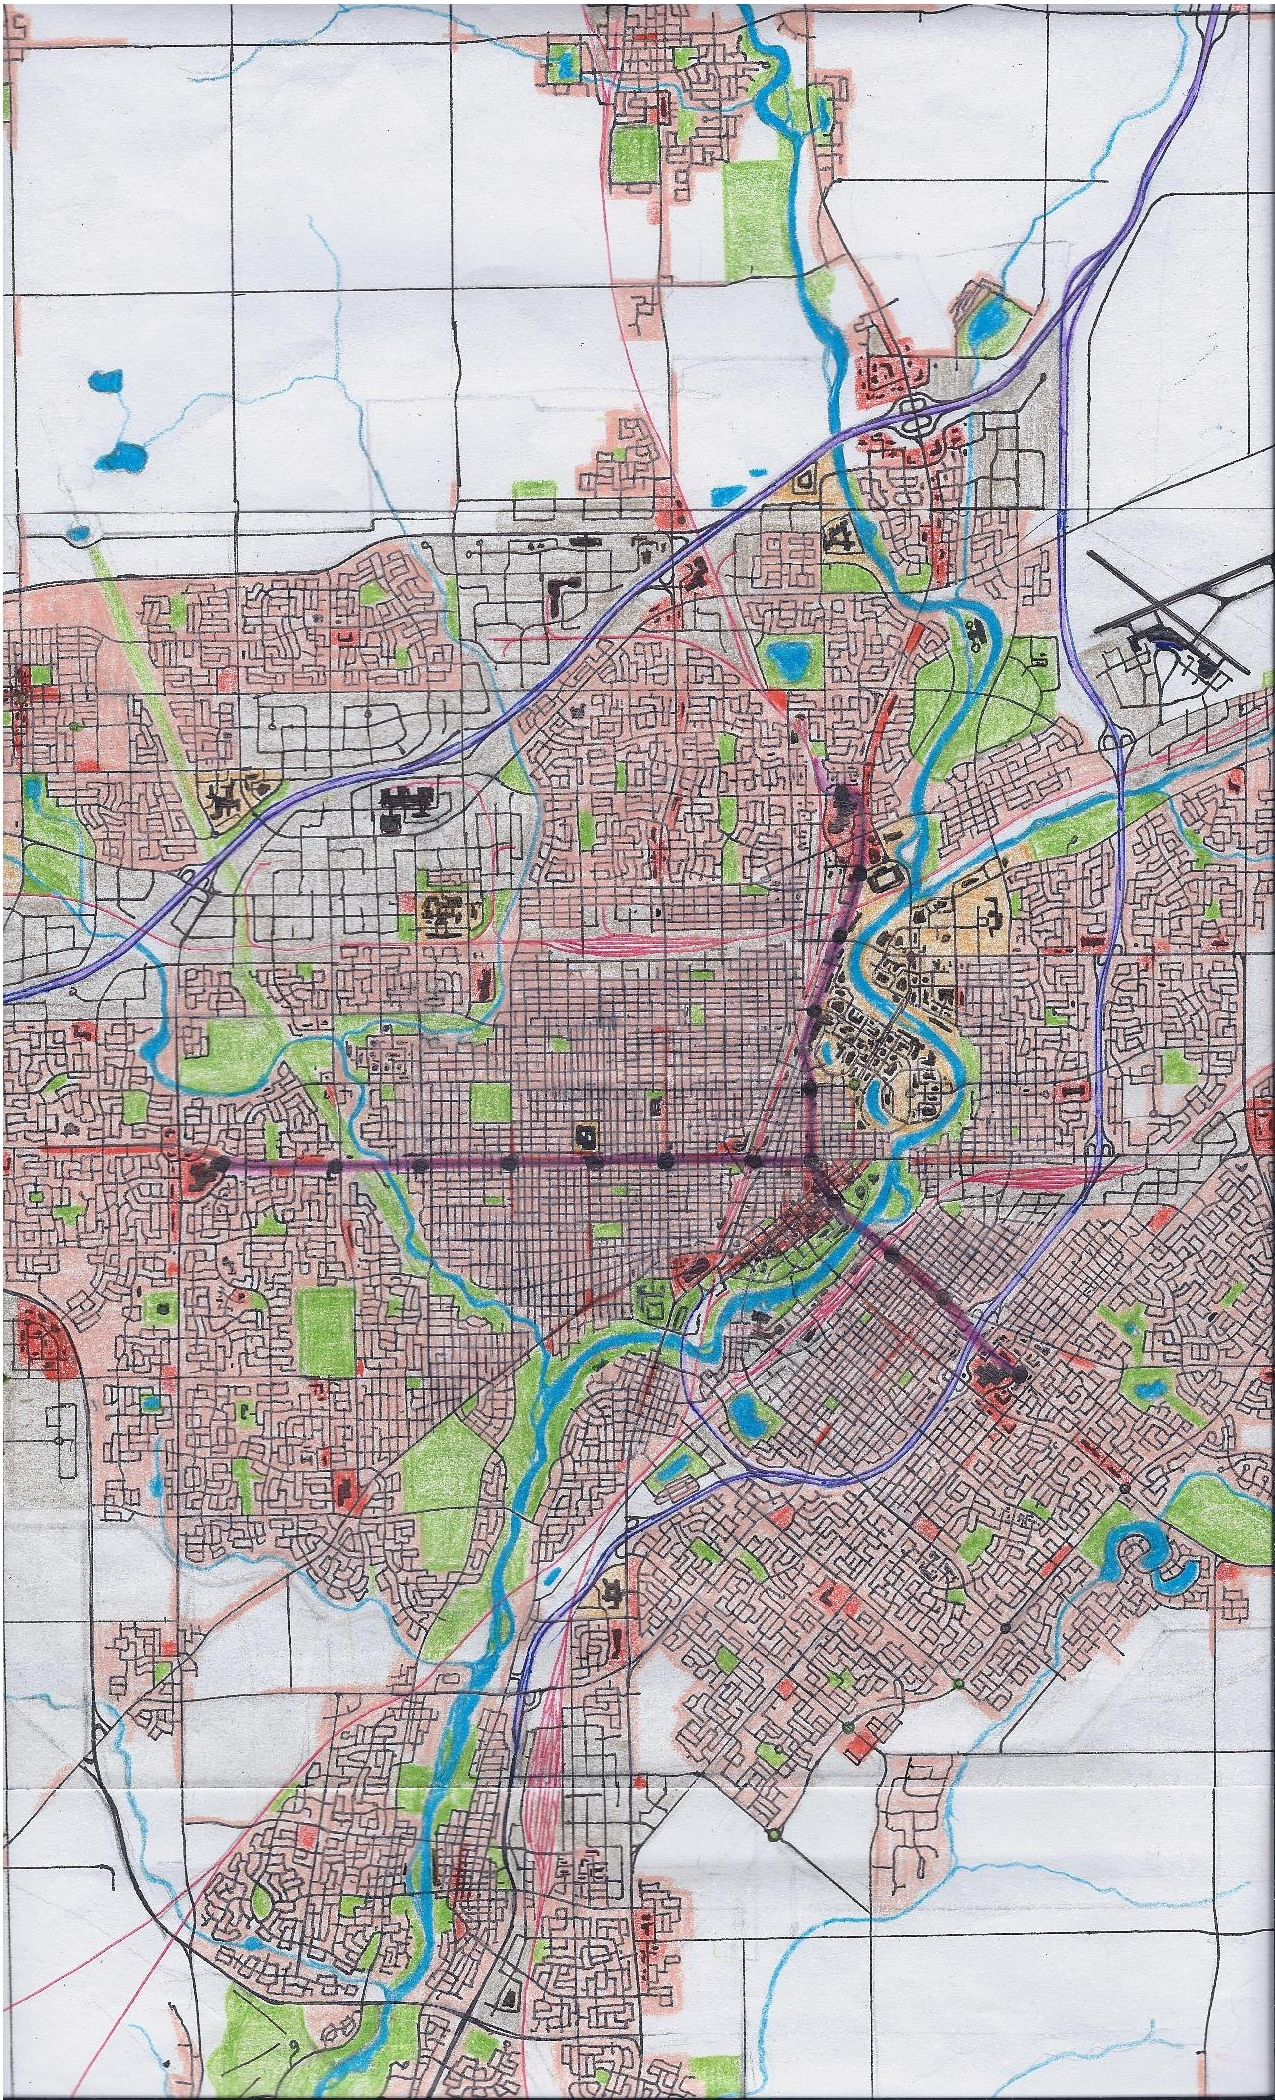 Anchester city map